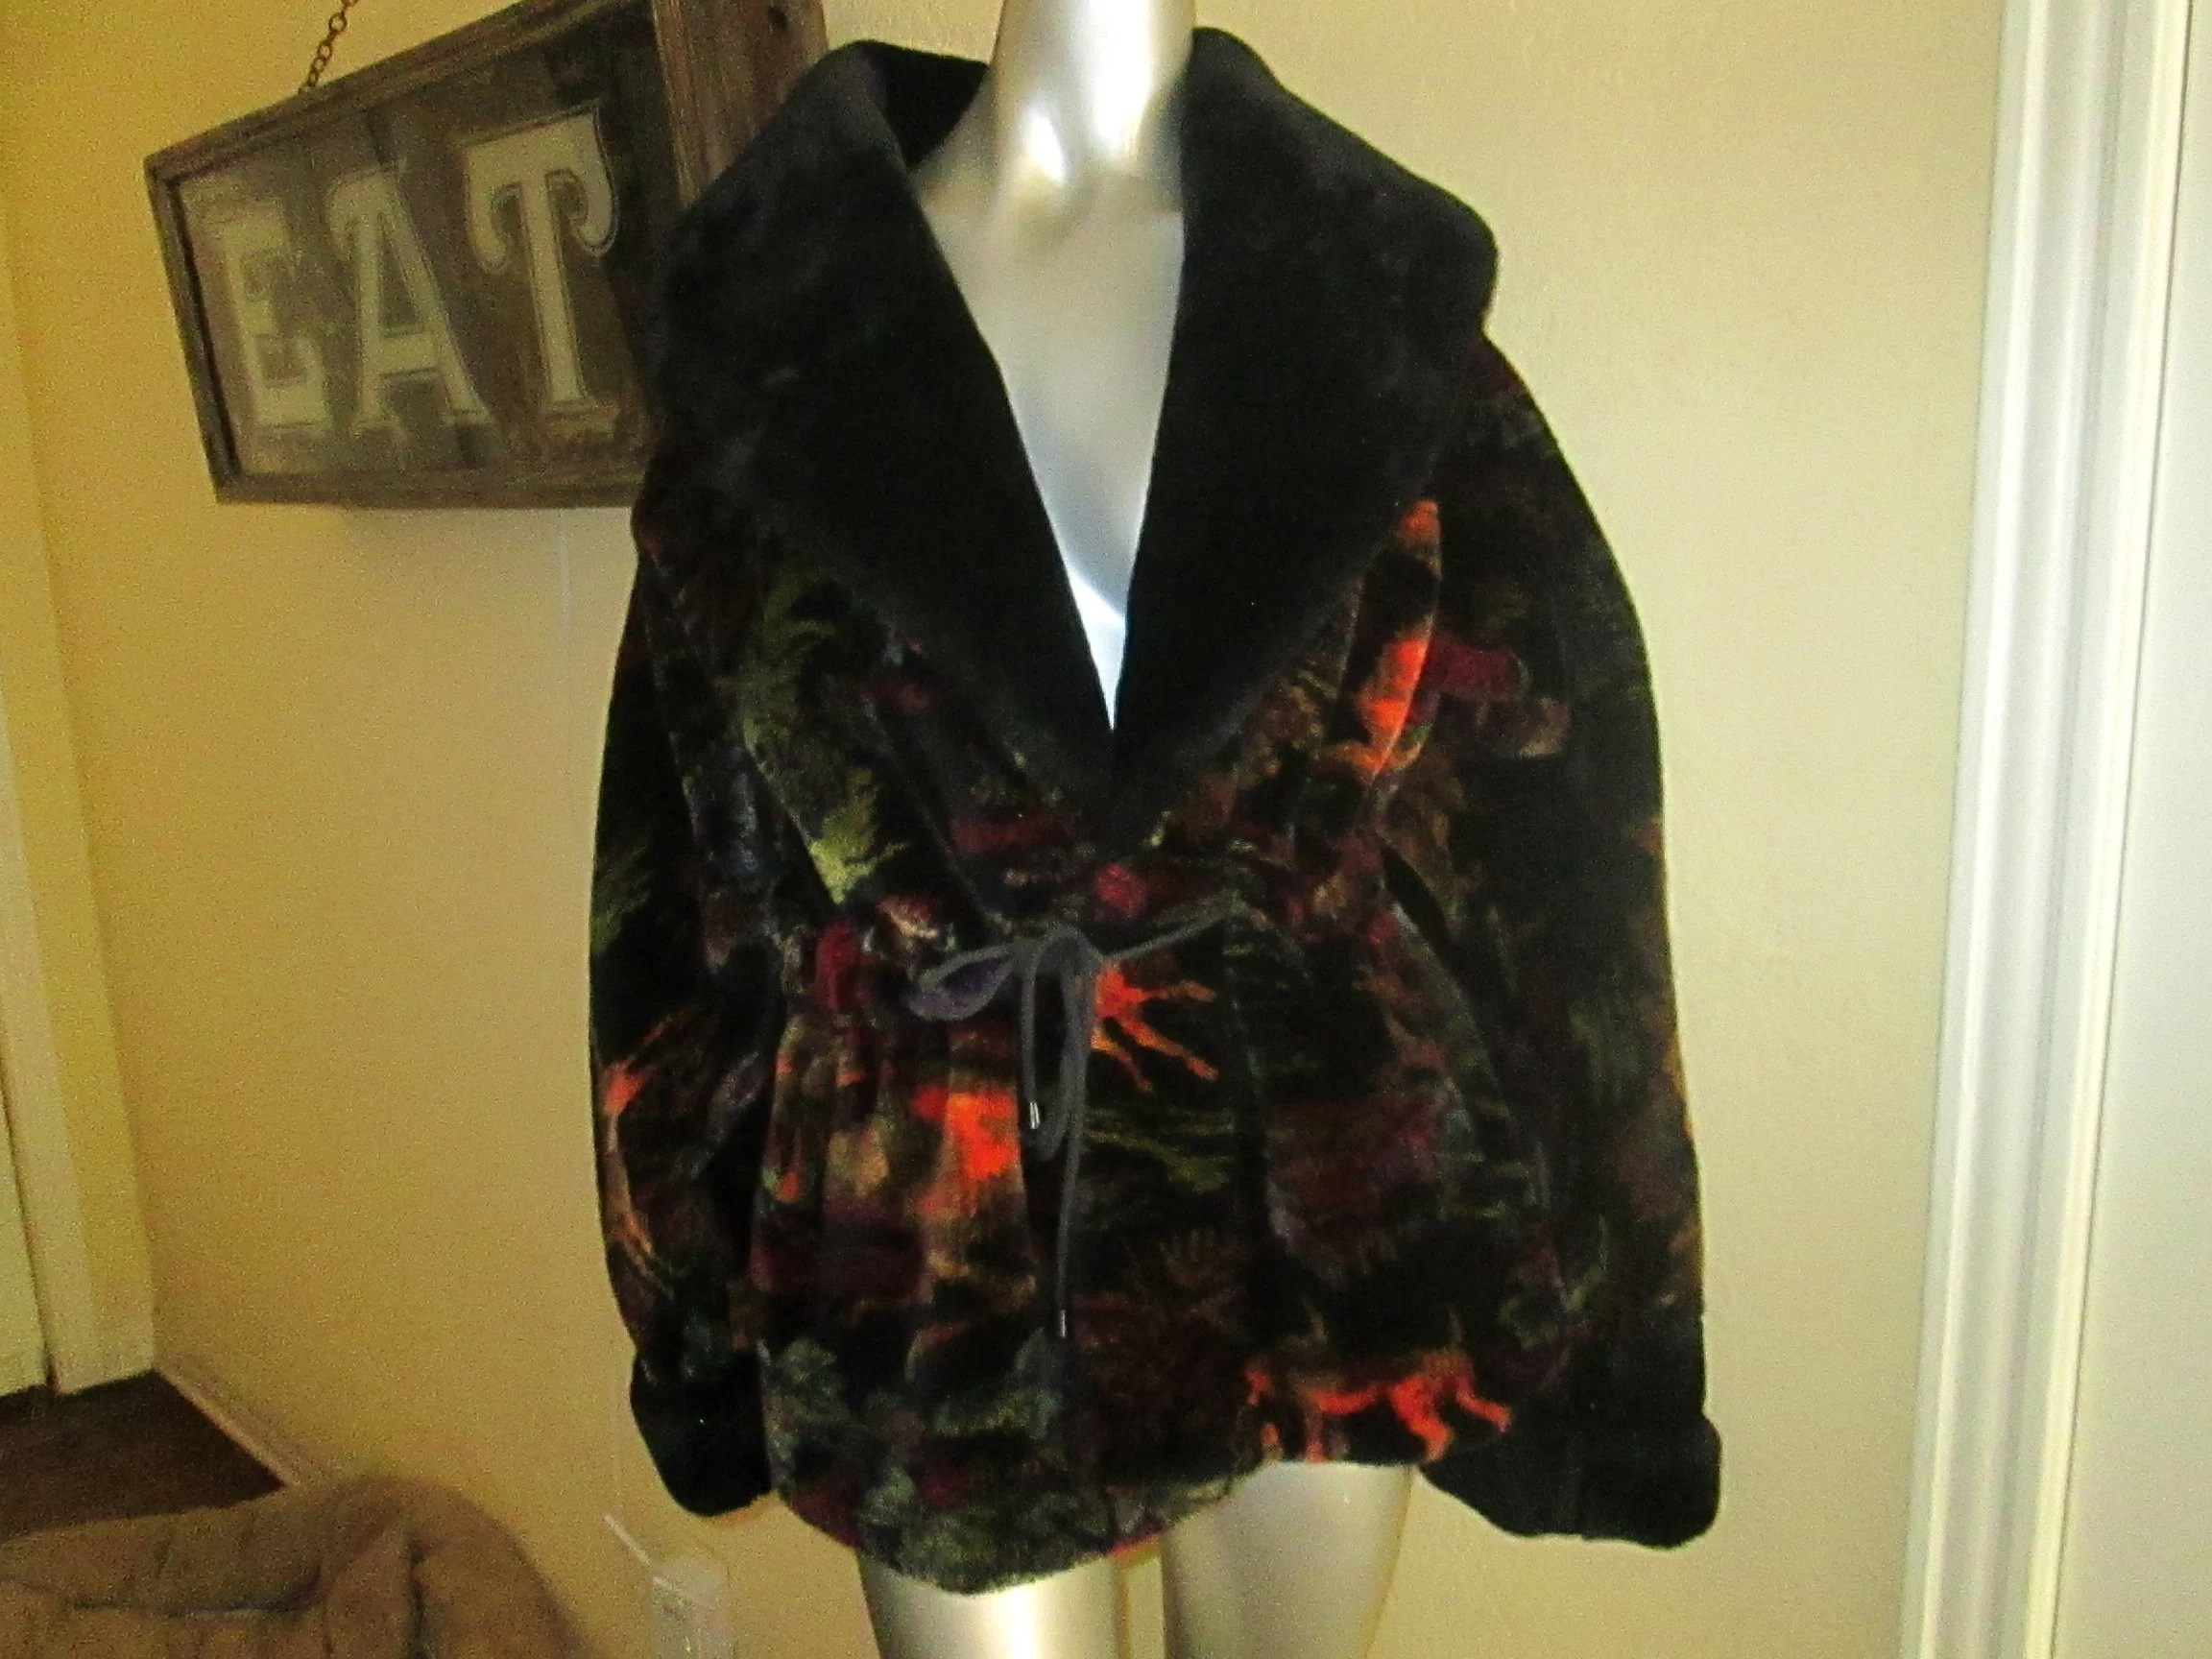 Monterey fashions   Etsy Vintage Fake Fur Black Multi Color Car Coat M L Monterey Fashions   FAB